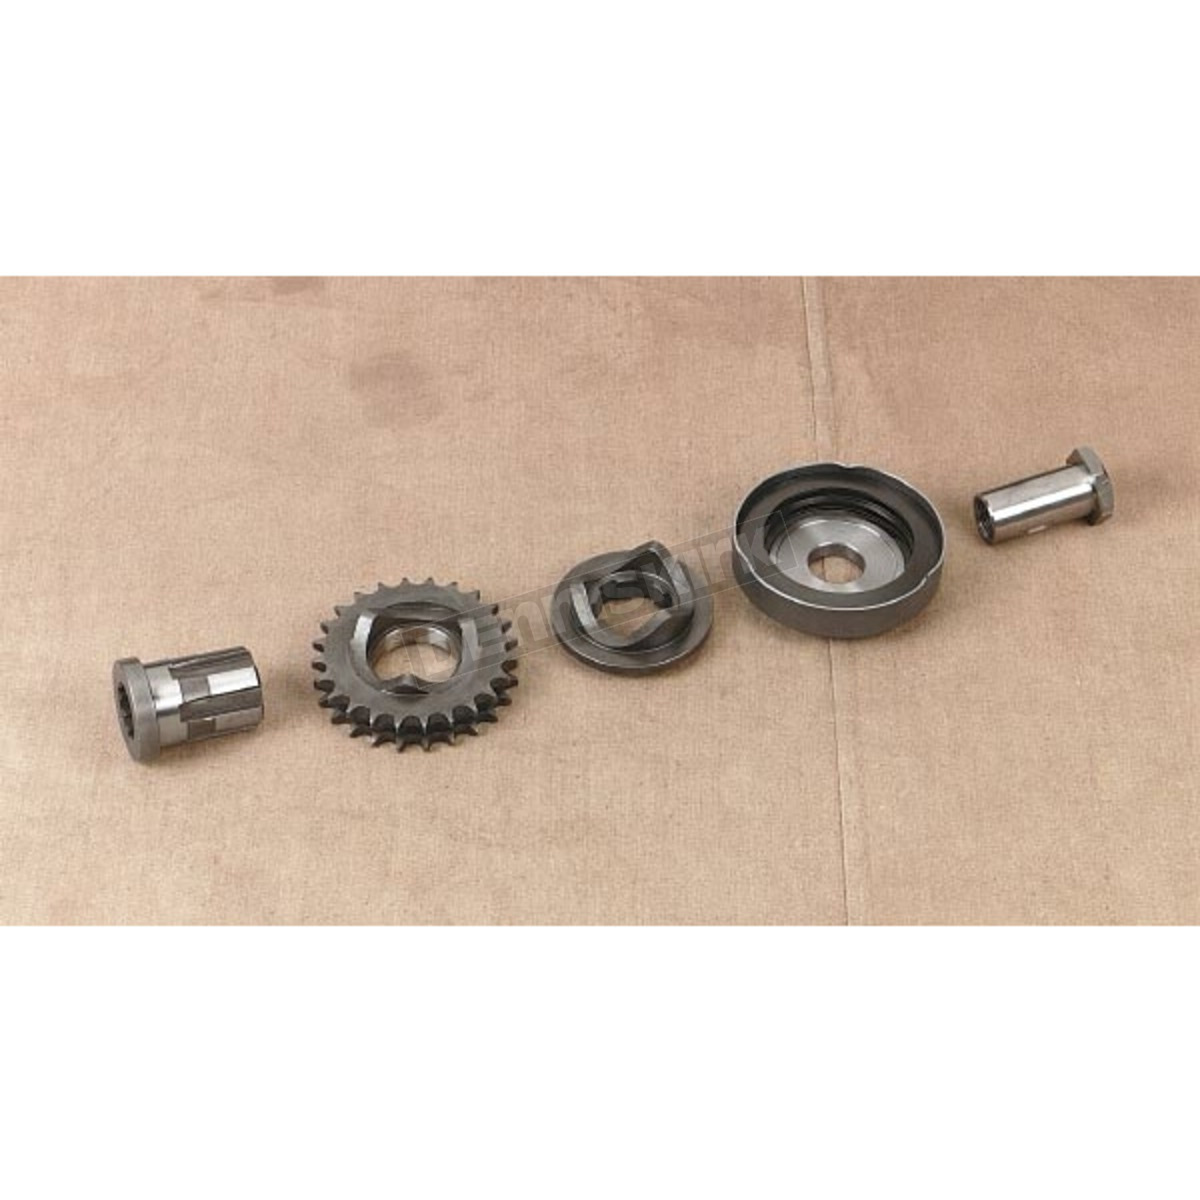 Compensating 25-Tooth Sprocket Kit - DS-195196 on